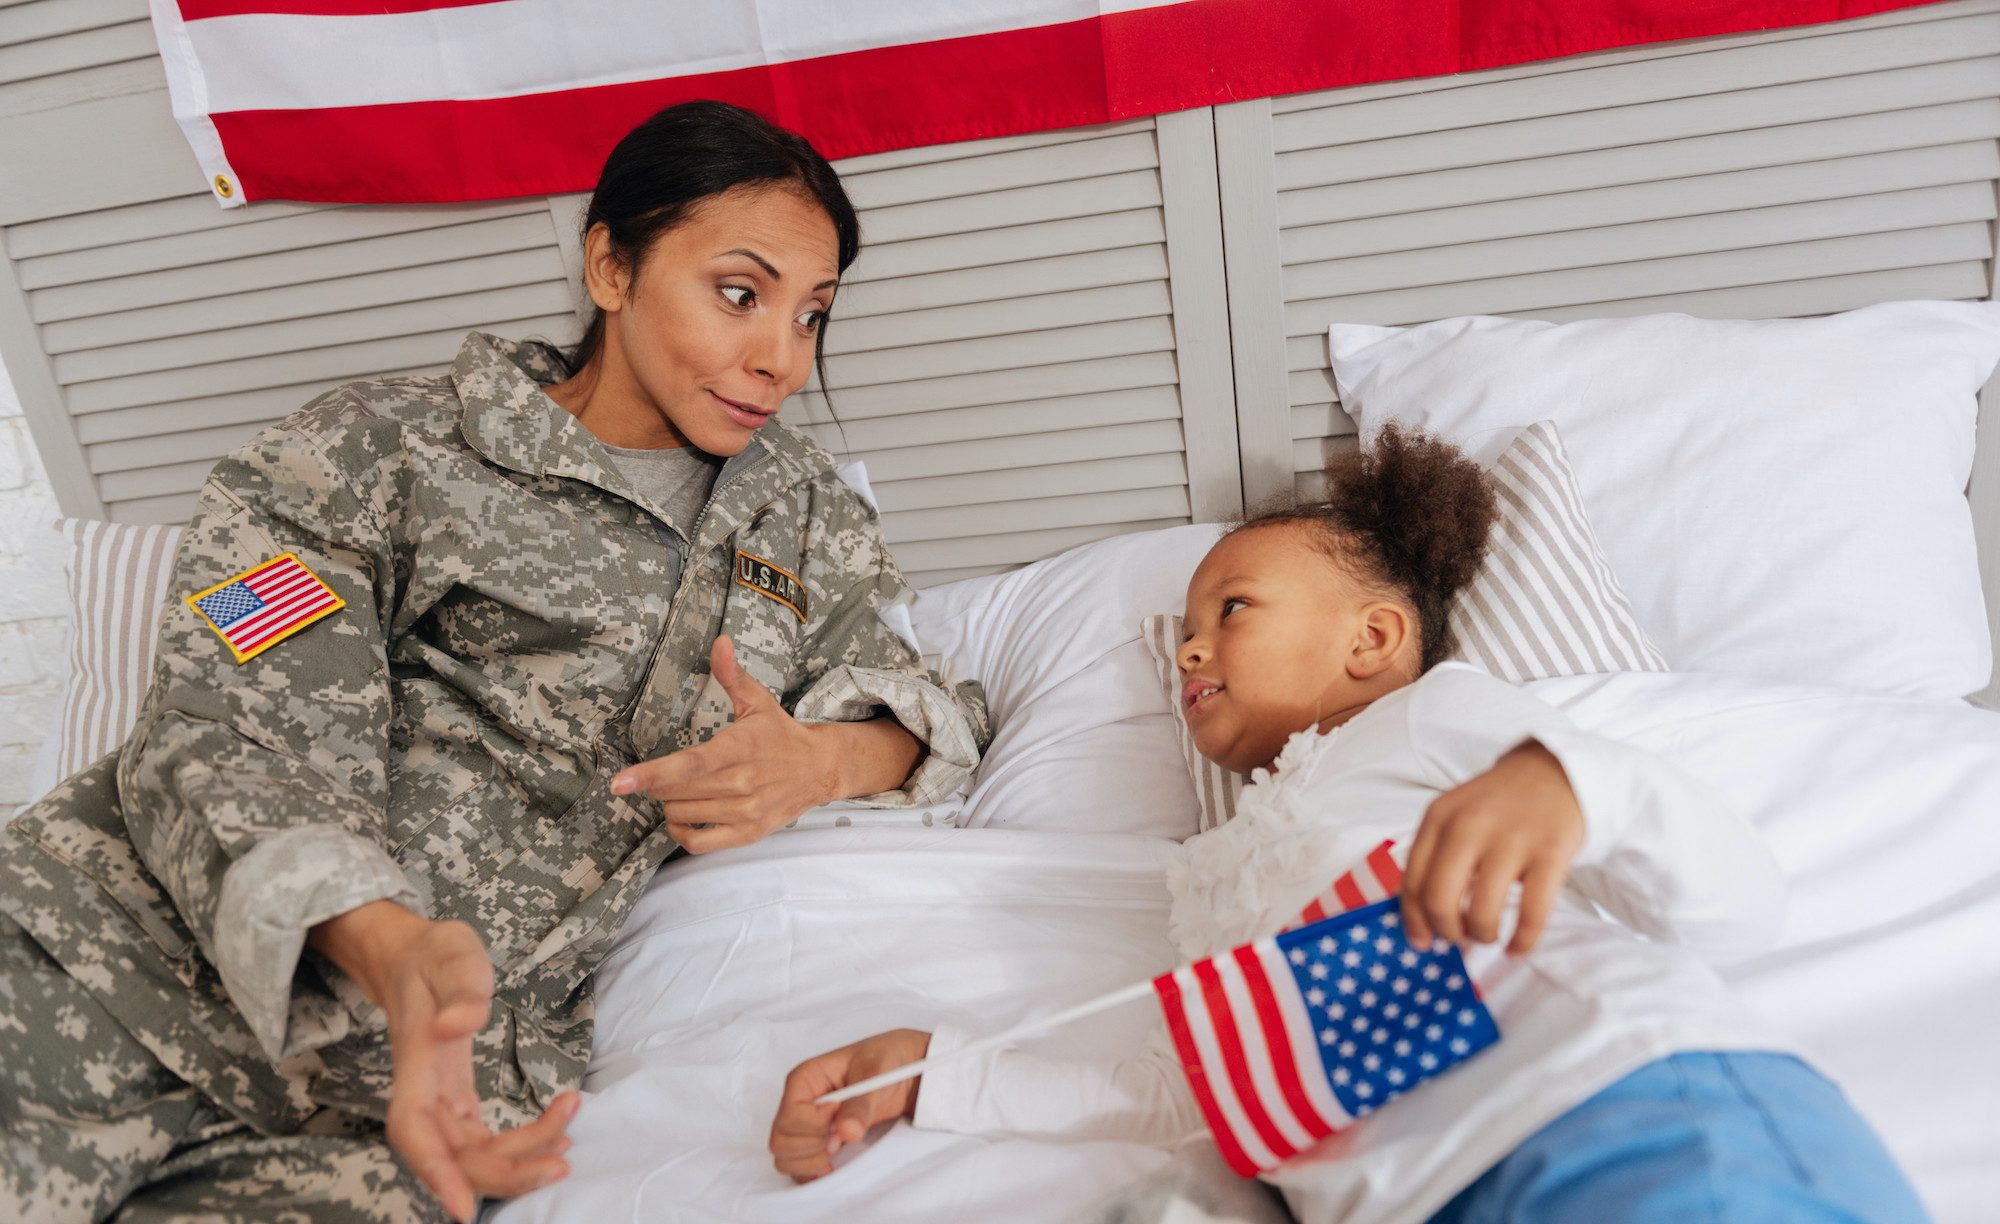 Veteran mother having a conversation with her daughter on a bed